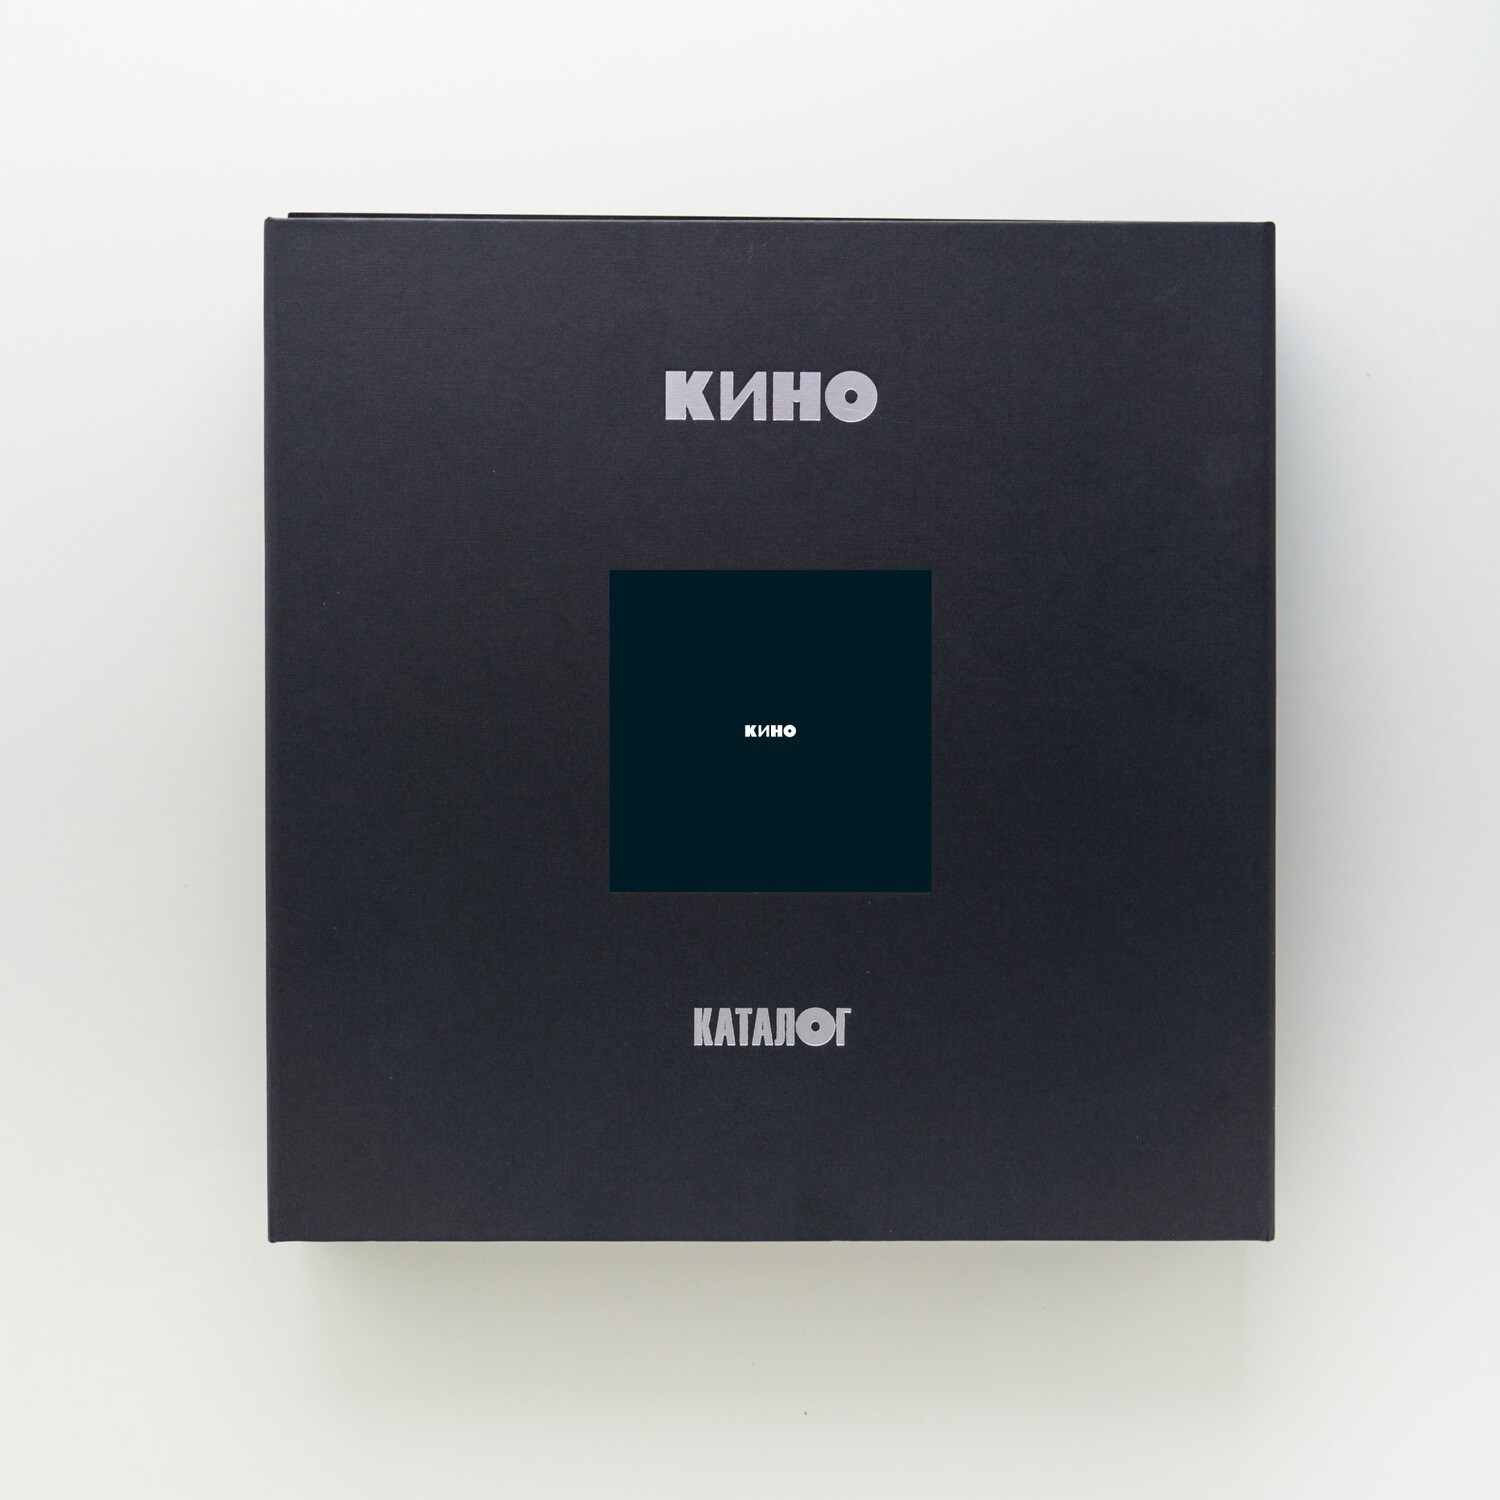 [PREORDER] Box-set: КИНО — «Кино» (1990/2021) [Deluxe Box-set]